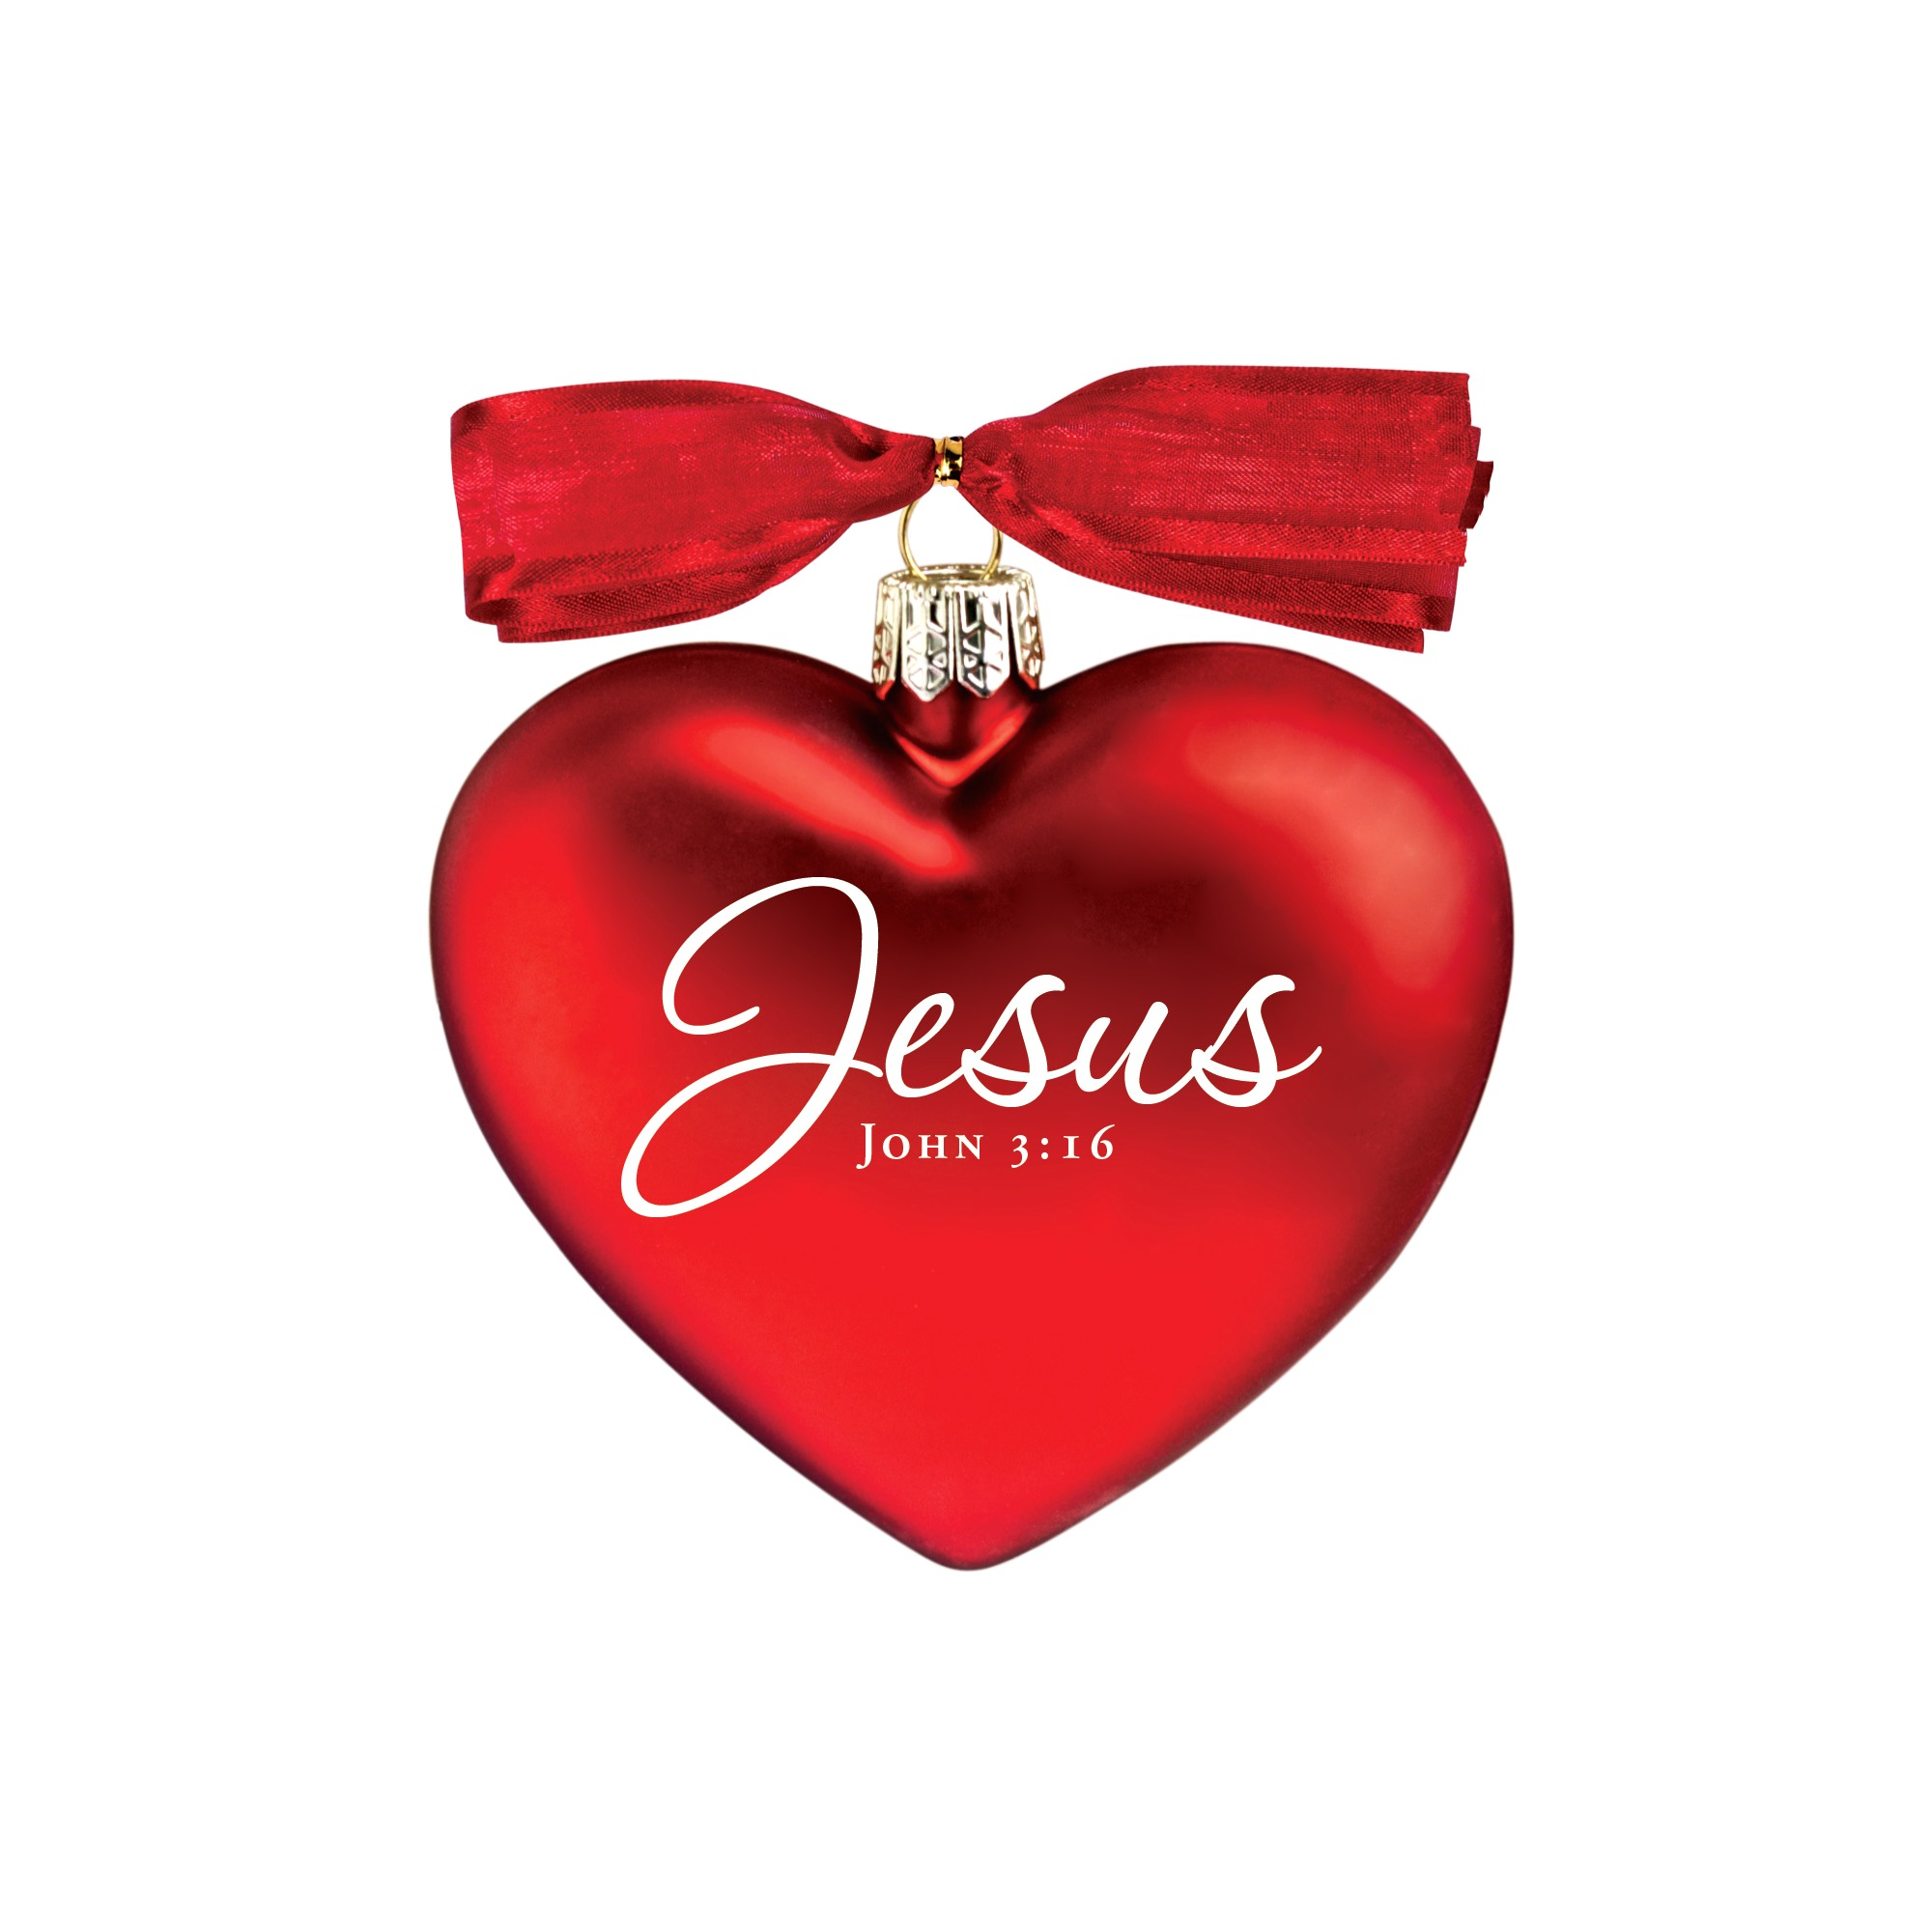 Images of Merry Christmas Heart Love - #CALTO